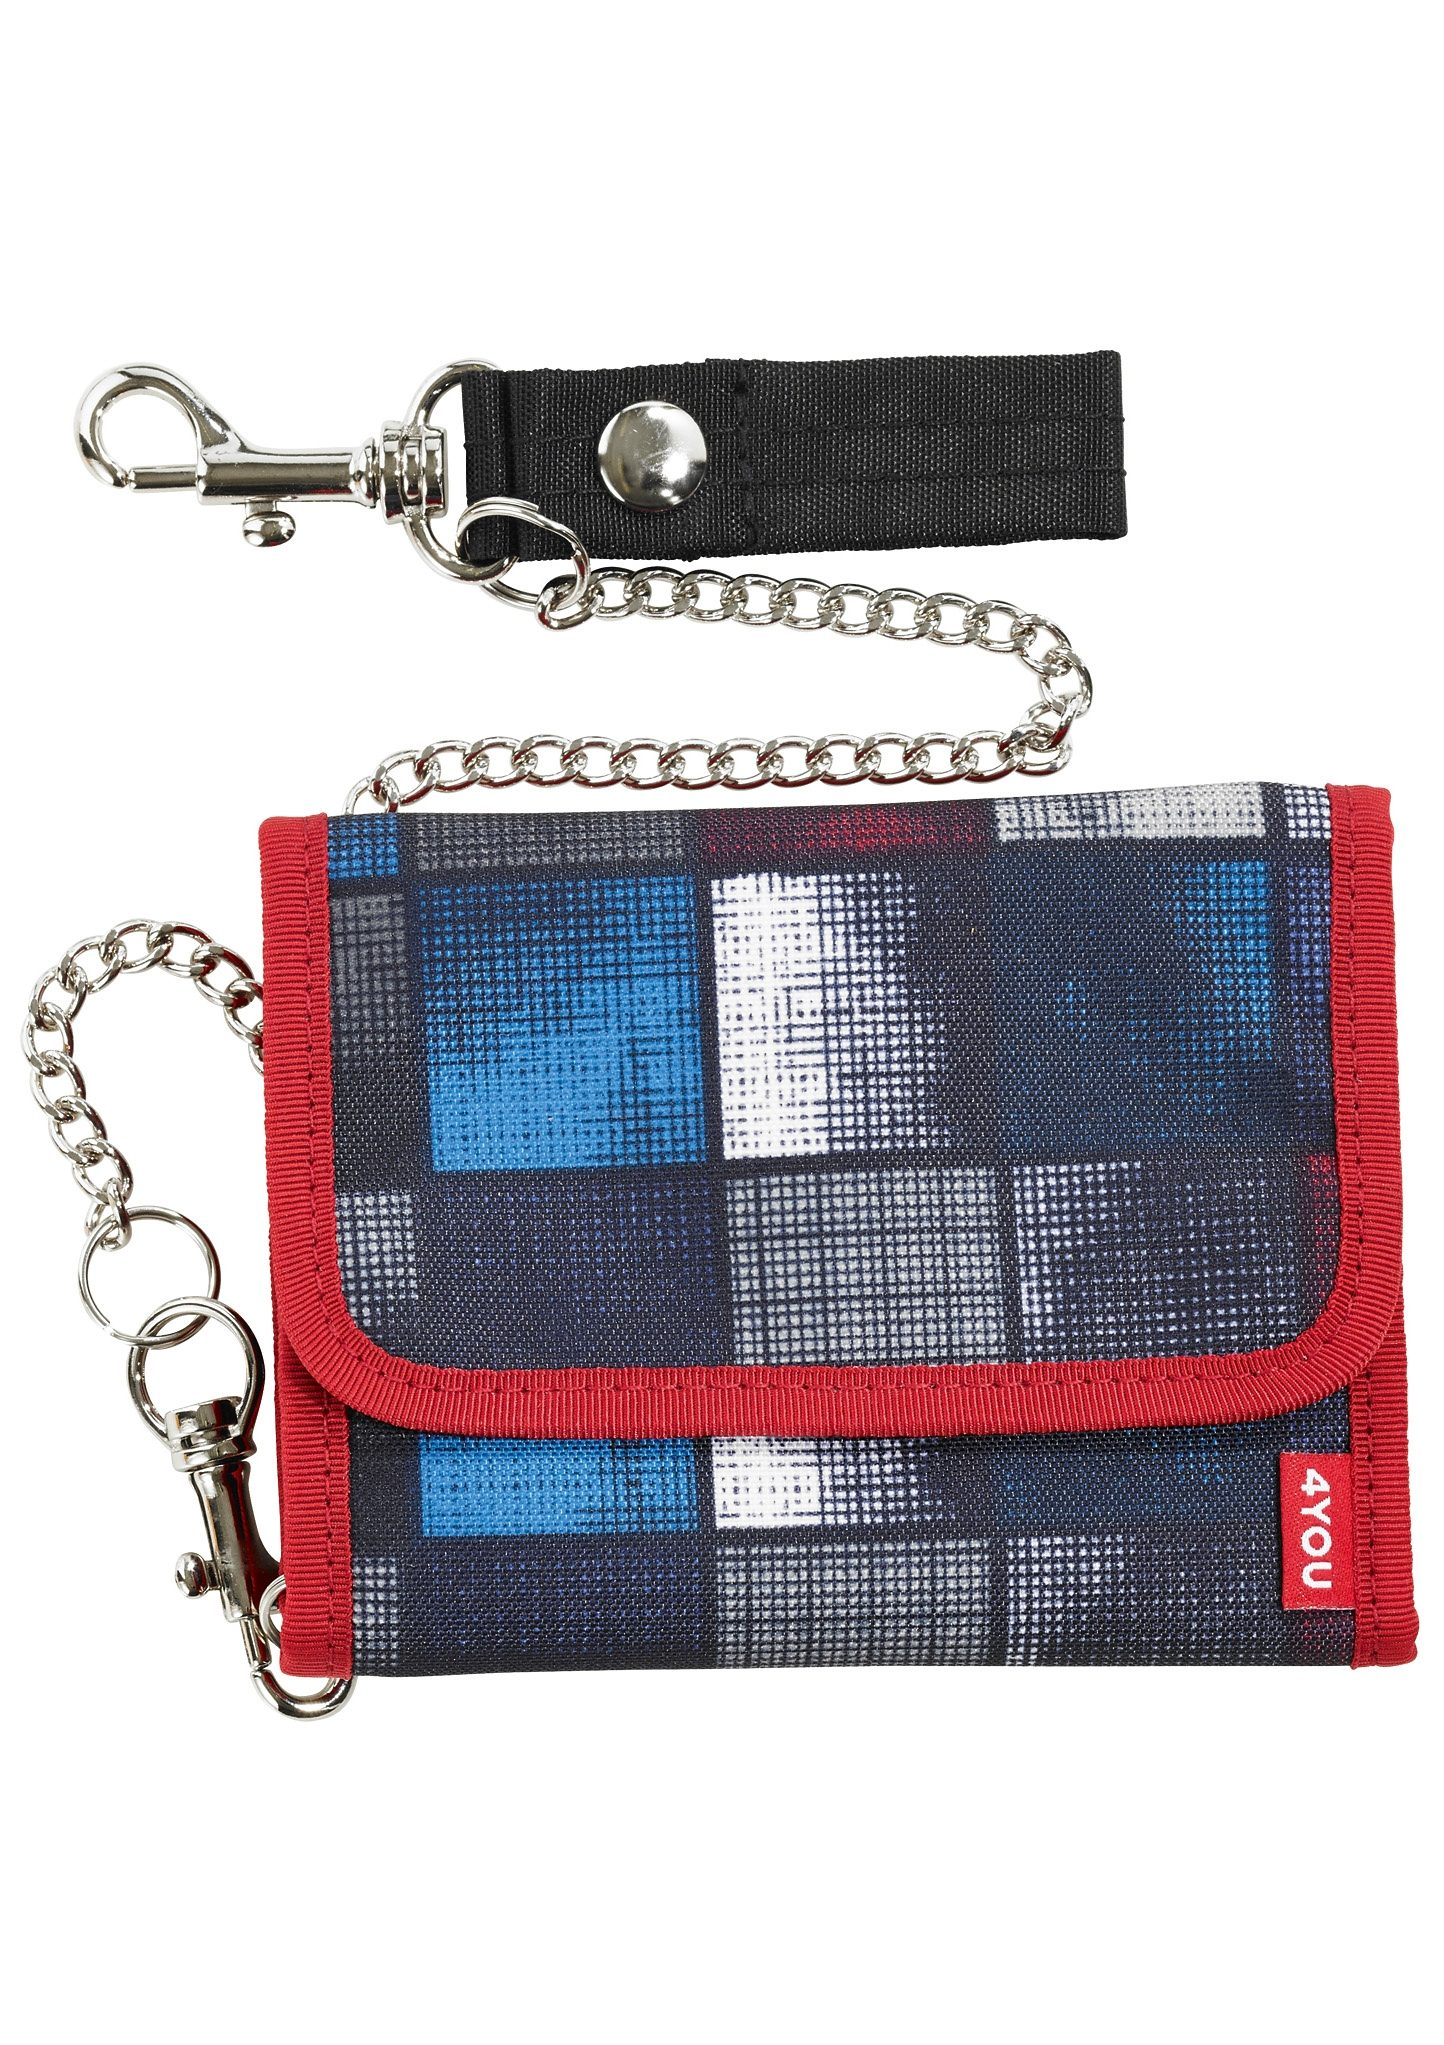 4YOU Geldbörse, Square Blue/Red, »Kettenbörse II«